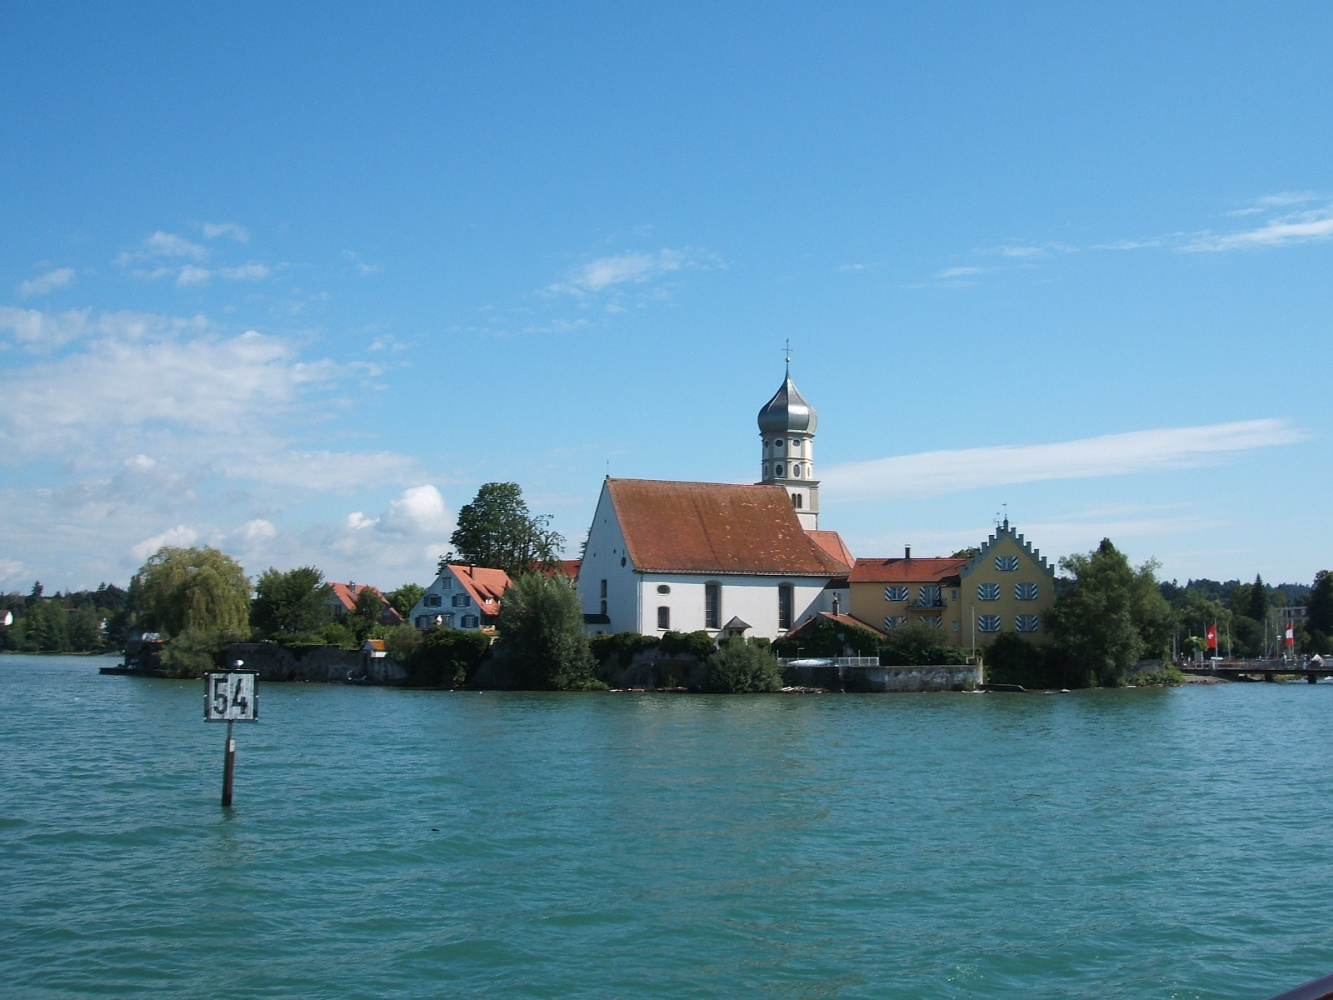 Wasserburg seen from the lake - our base for touring